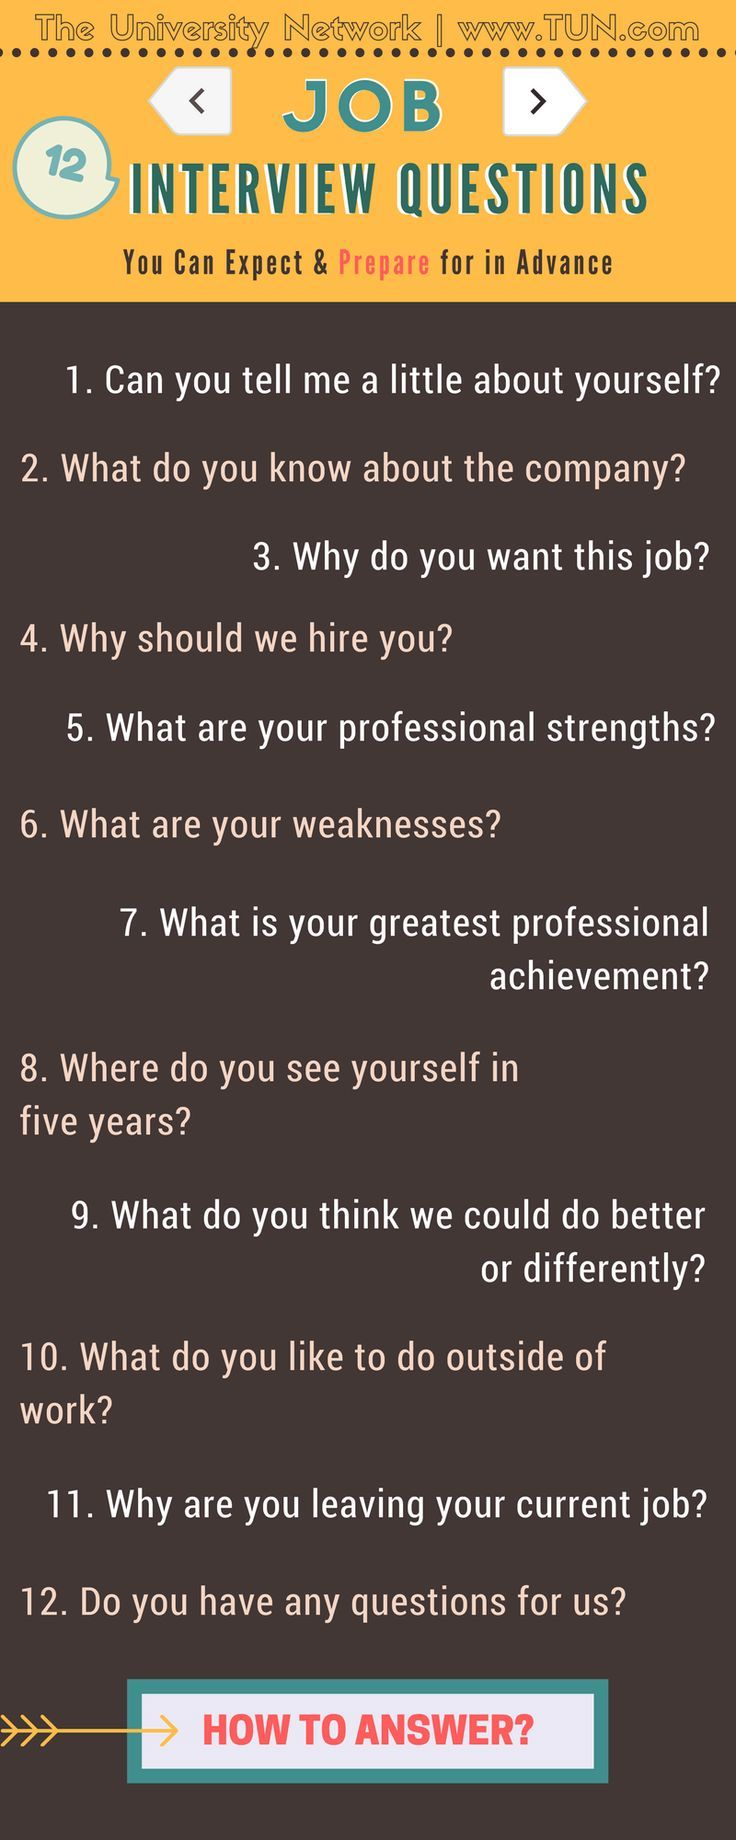 12 Typical Job Interview Questions How To Answer Them Easy Job